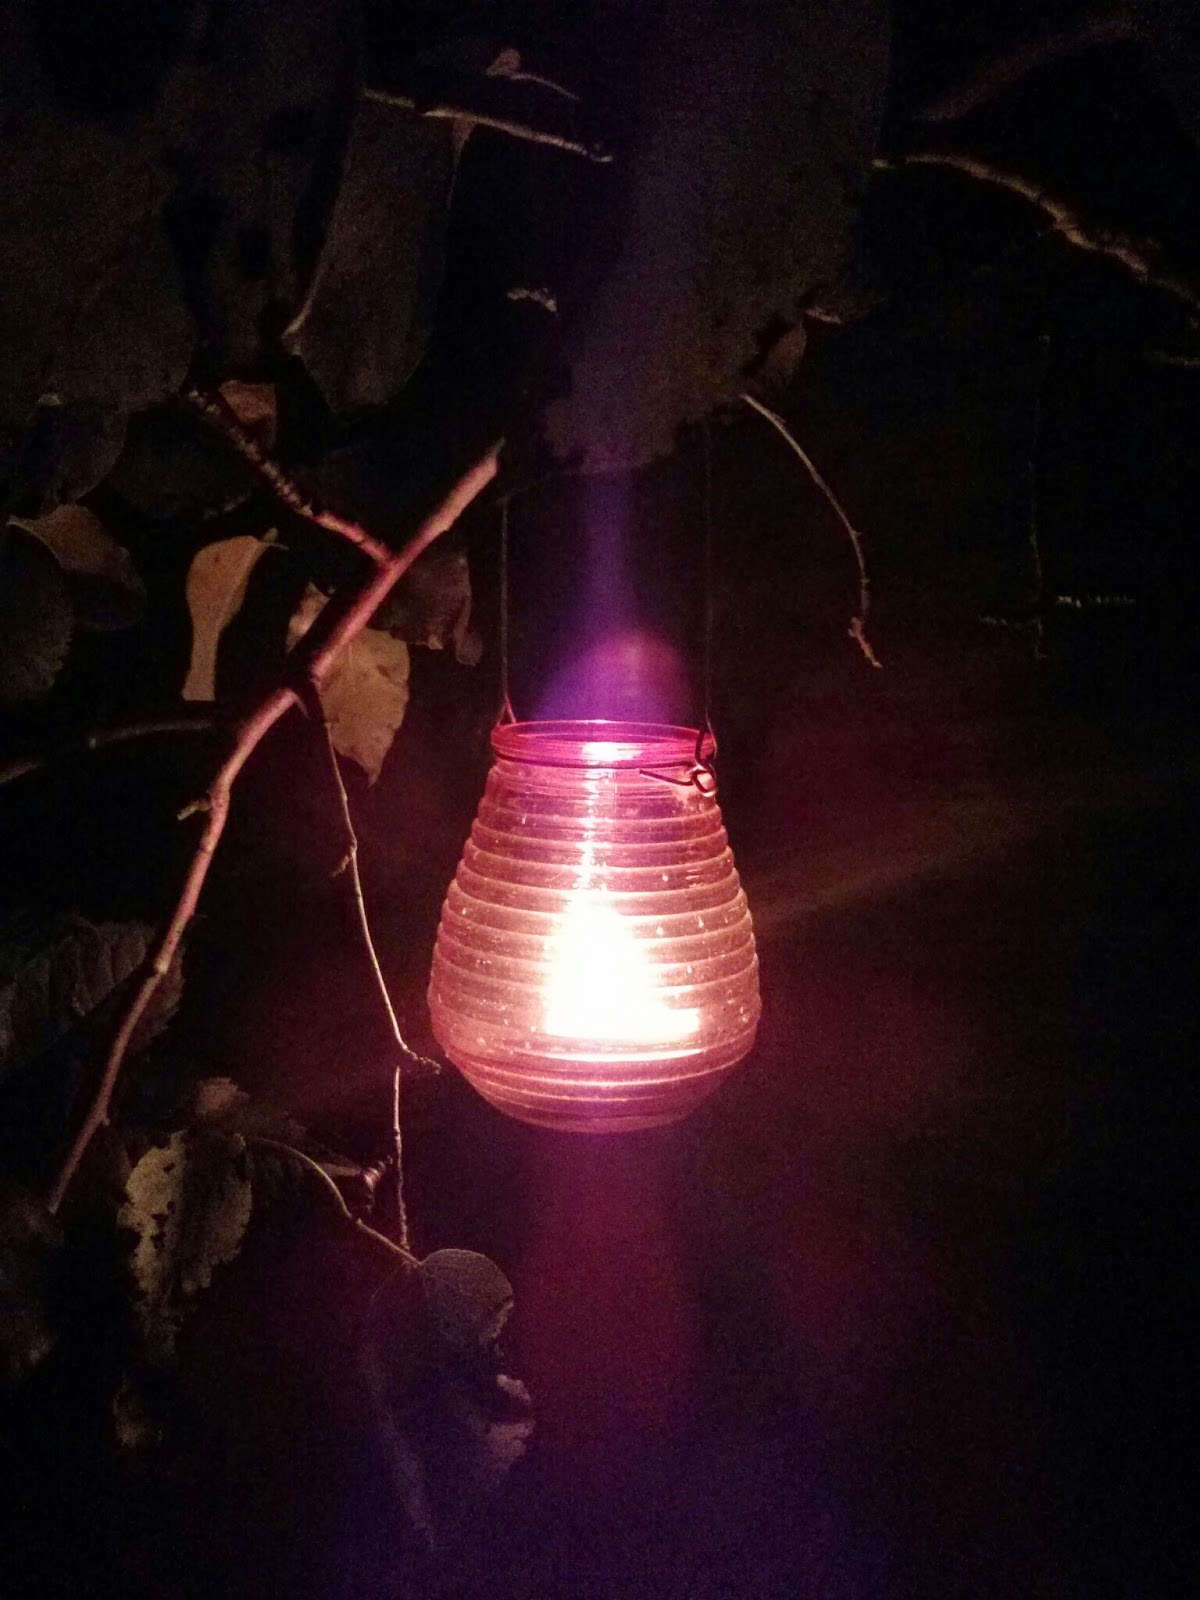 a glowing lantern in the tree